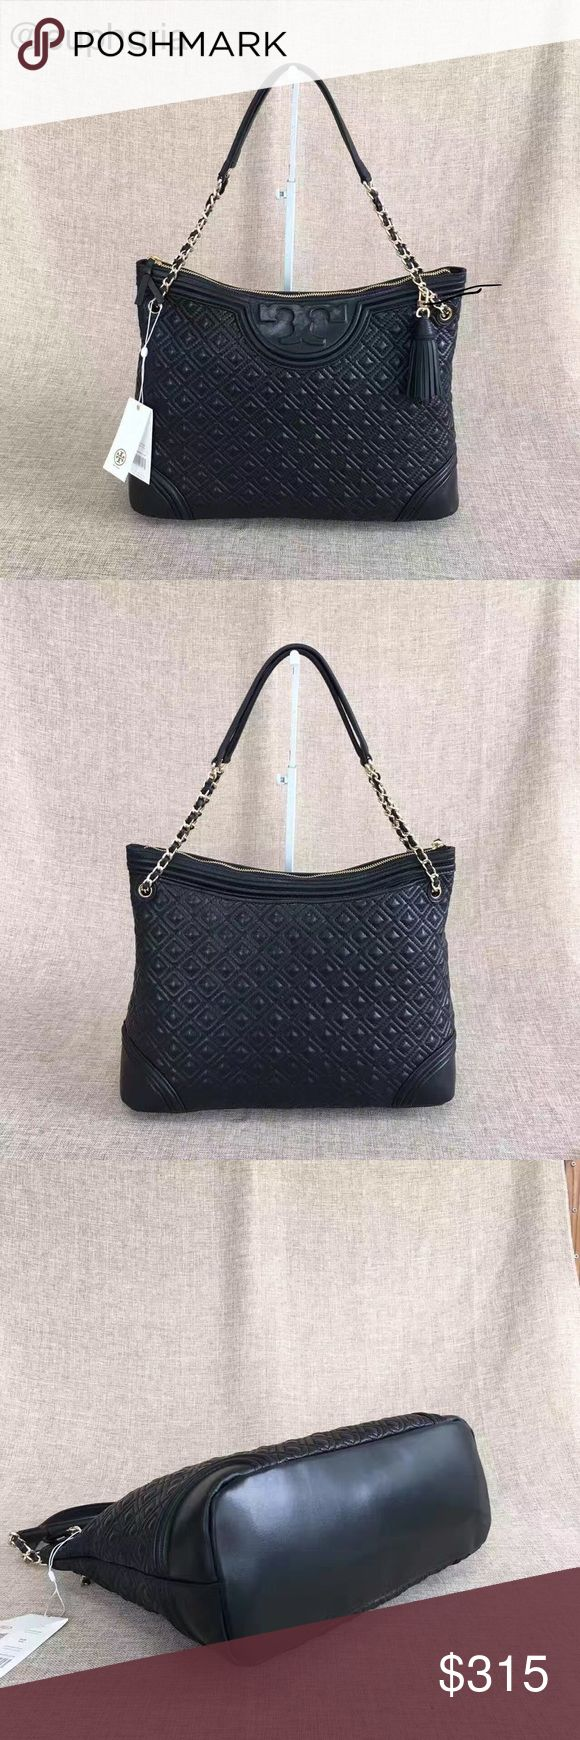 """Tory burch Fleming tote black Holds a 13"""" laptop, a small umbrella, A4 paper, a continental wallet and an iPhone 6 Plus Leather Zipper closure Leather-and-chain strap with 9.96"""" (25 cm) drop 1 interior zipper pocket, 2 open pockets Height: 12.35"""" (31 cm) Length: 15.34"""" (38.5 cm) Depth: 5.58"""" (14 cm) Tory Burch Bags Totes"""